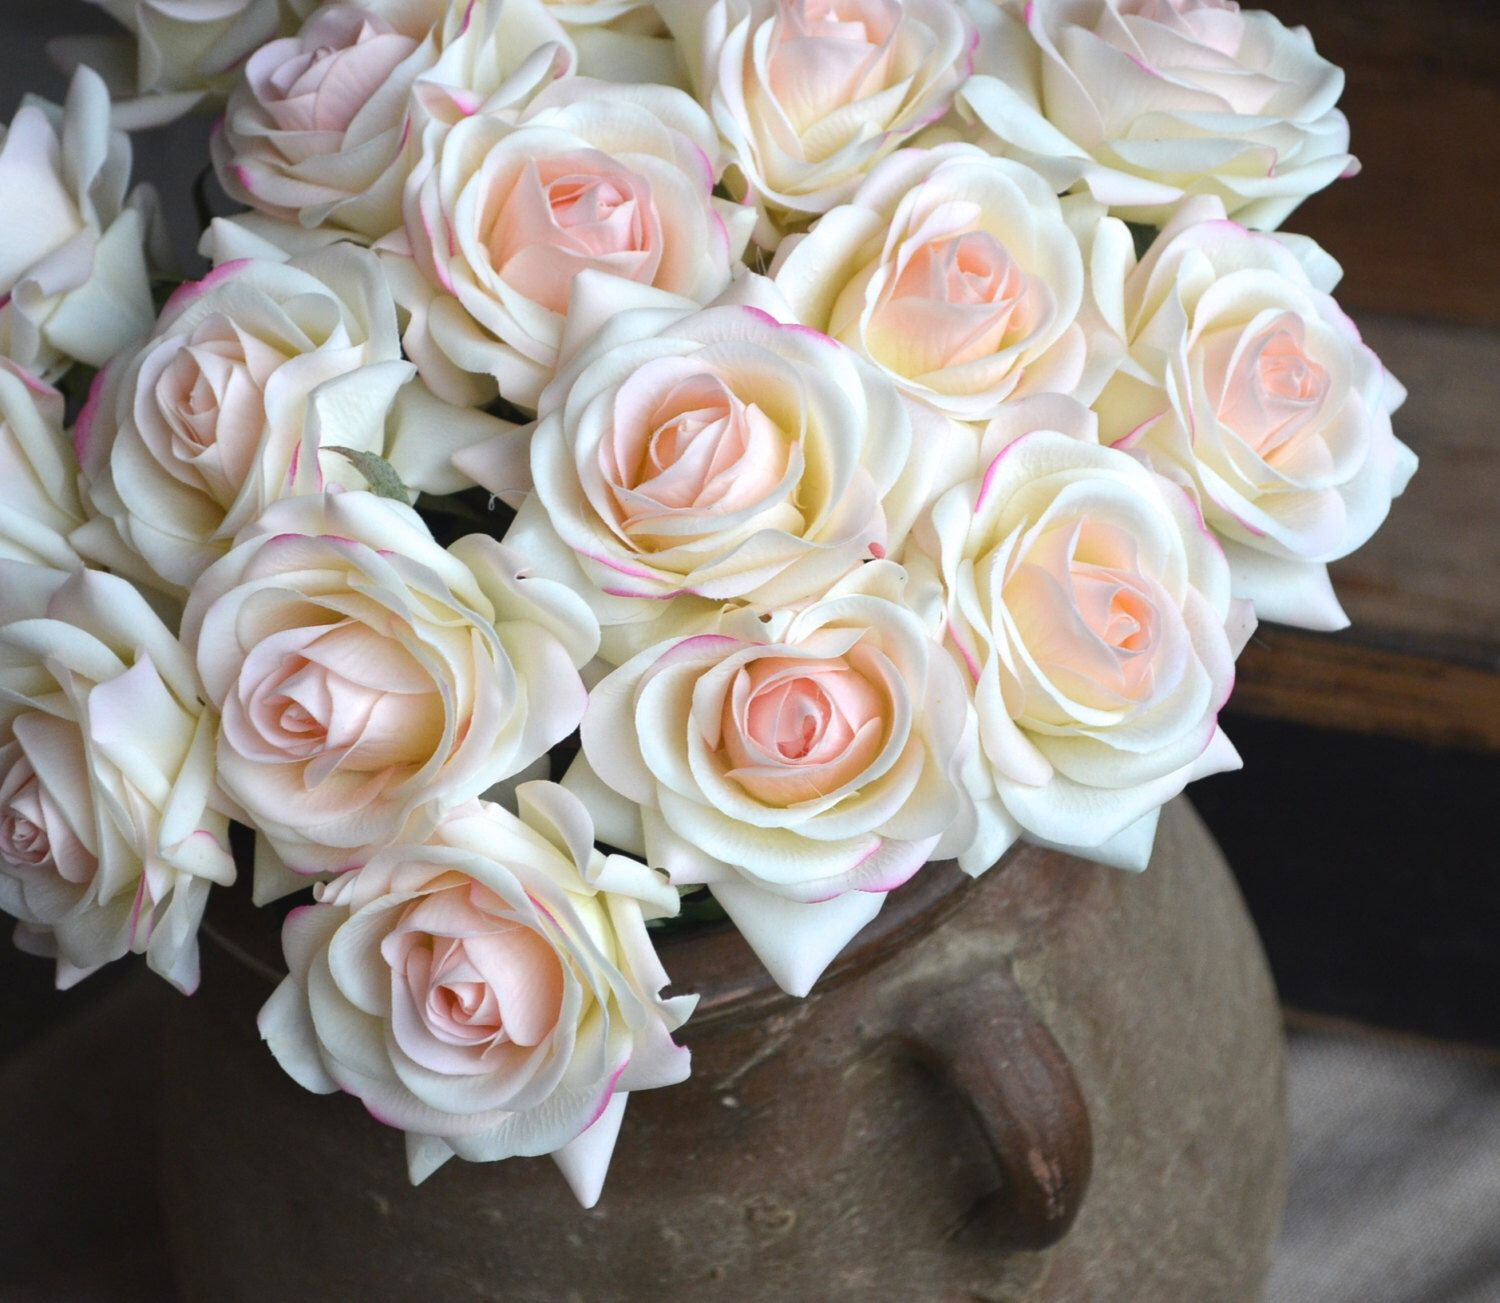 Light blush roses real touch flowers silk roses diy wedding flowers light blush roses real touch flowers silk roses diy wedding flowers silk bridal bouquets wedding centerpieces izmirmasajfo